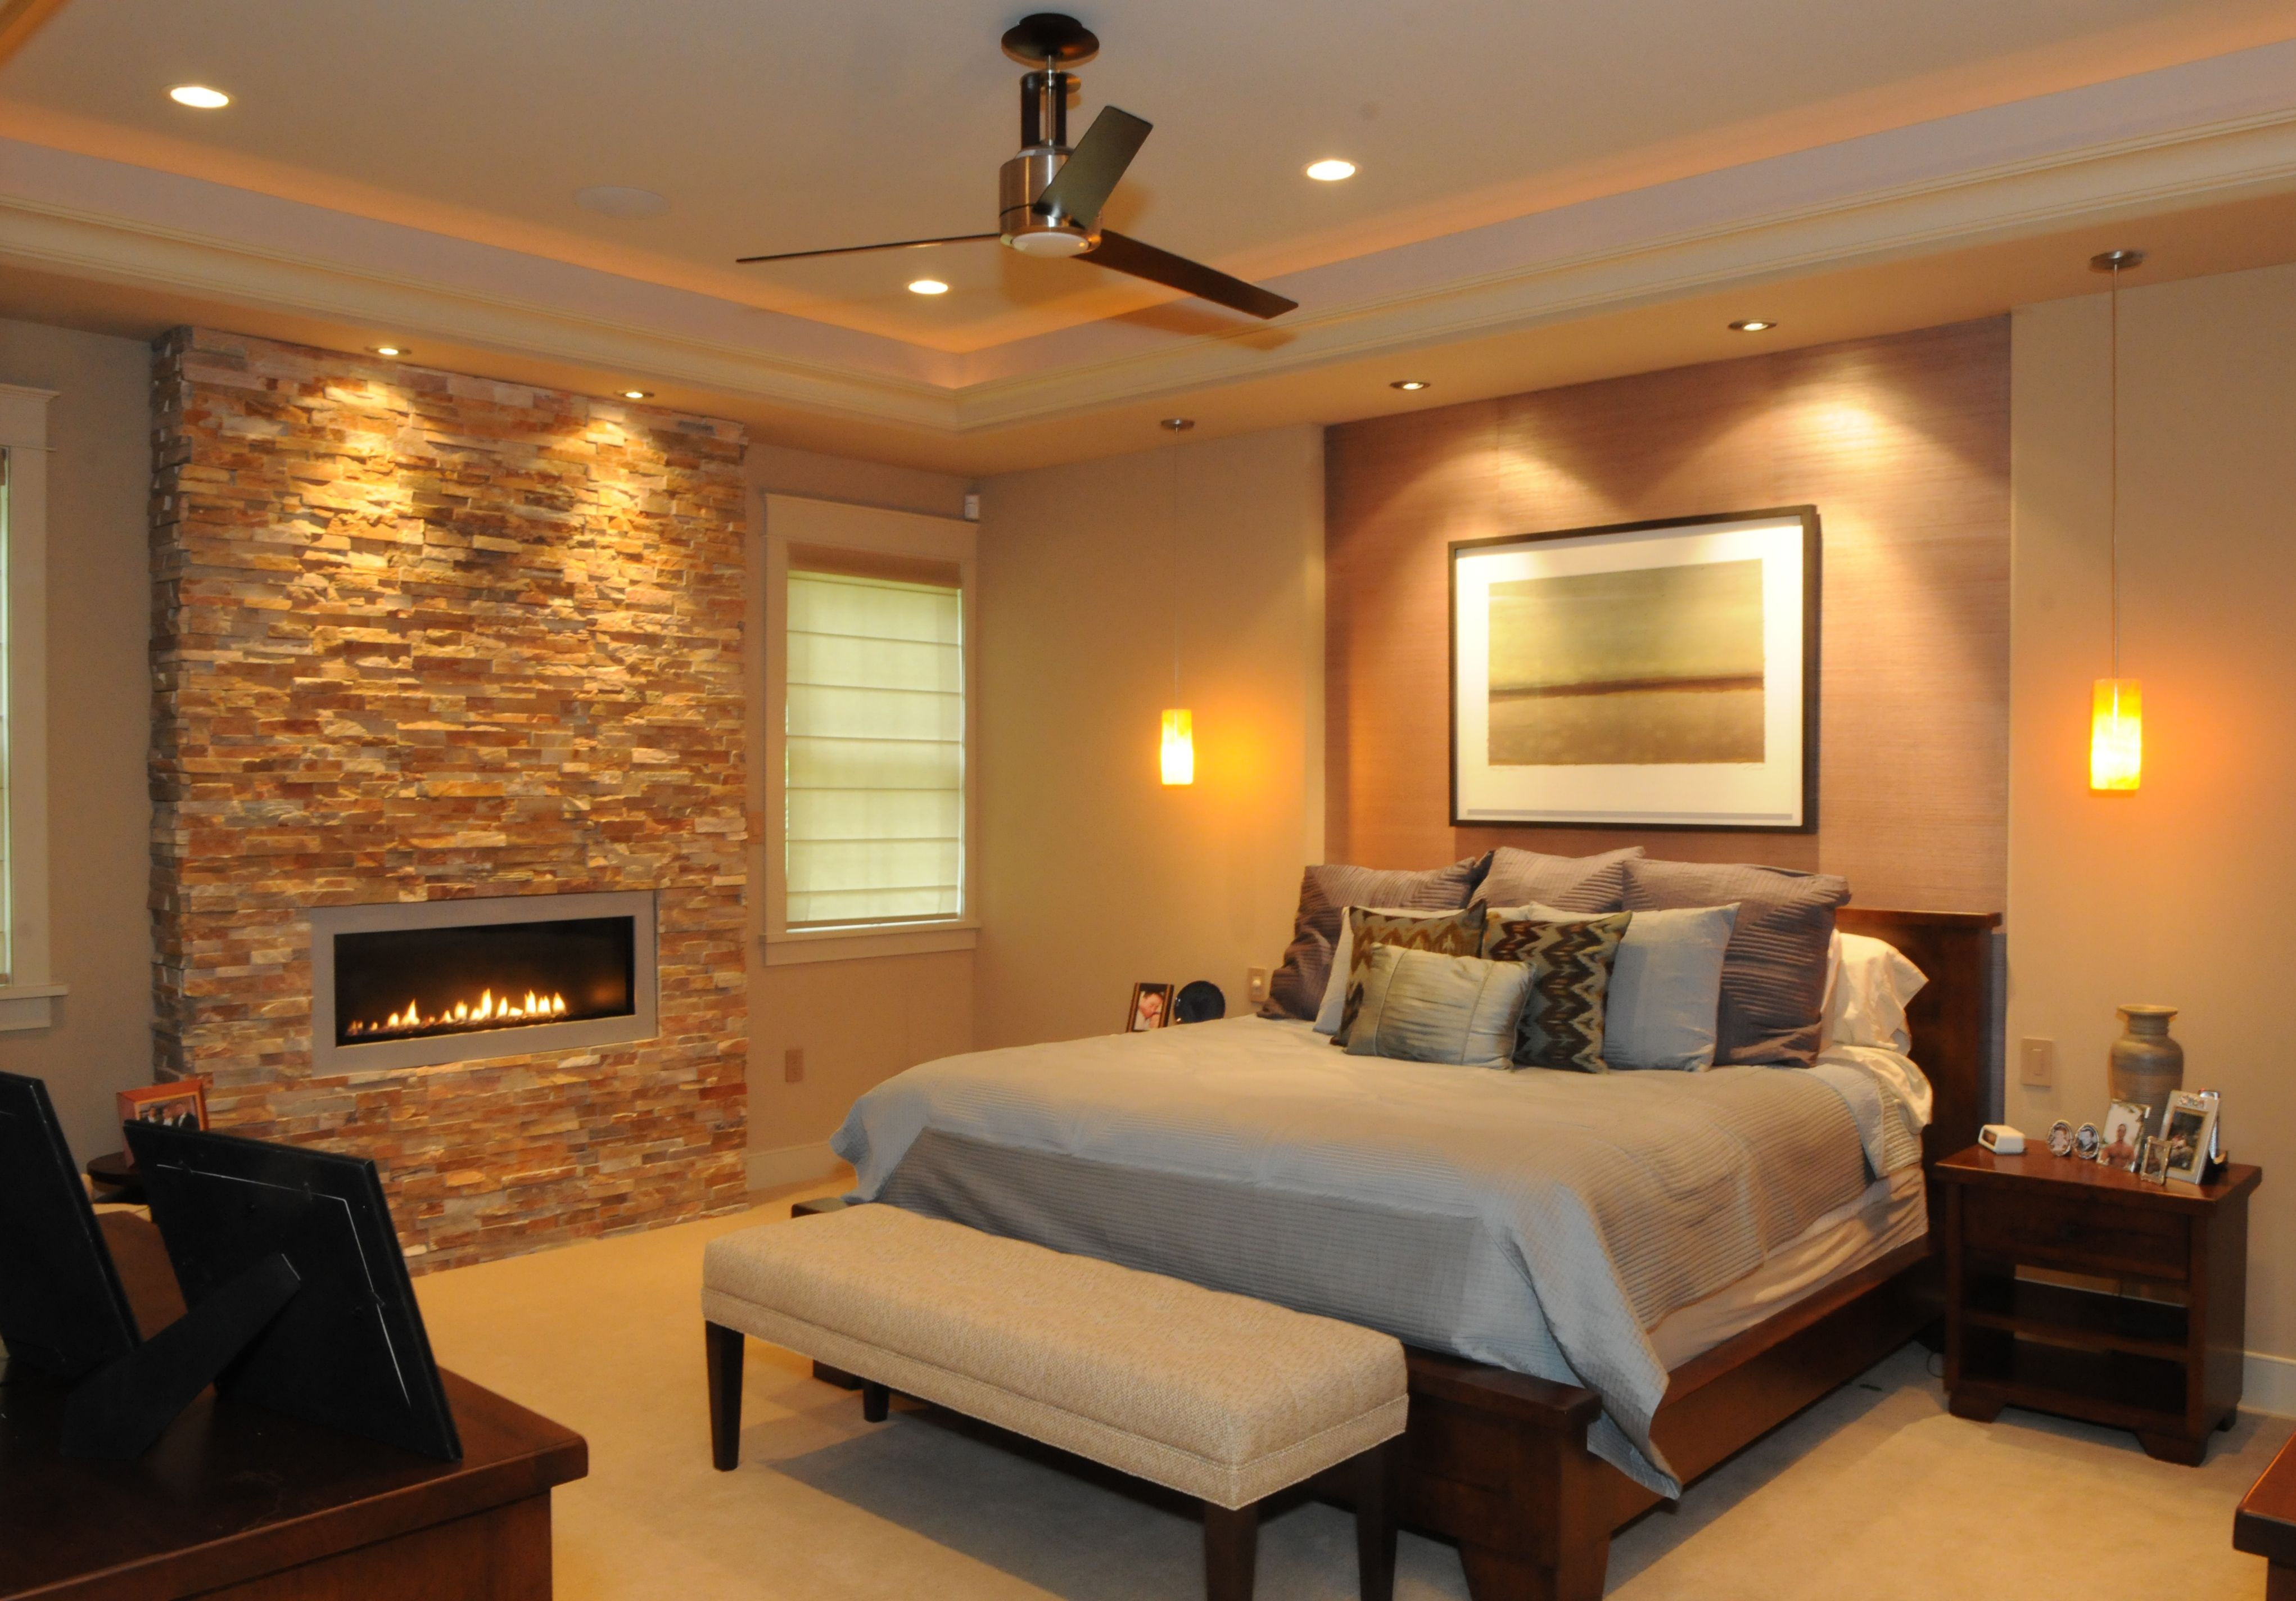 Fire Place In The Master Bedroom For Those Cold Winter